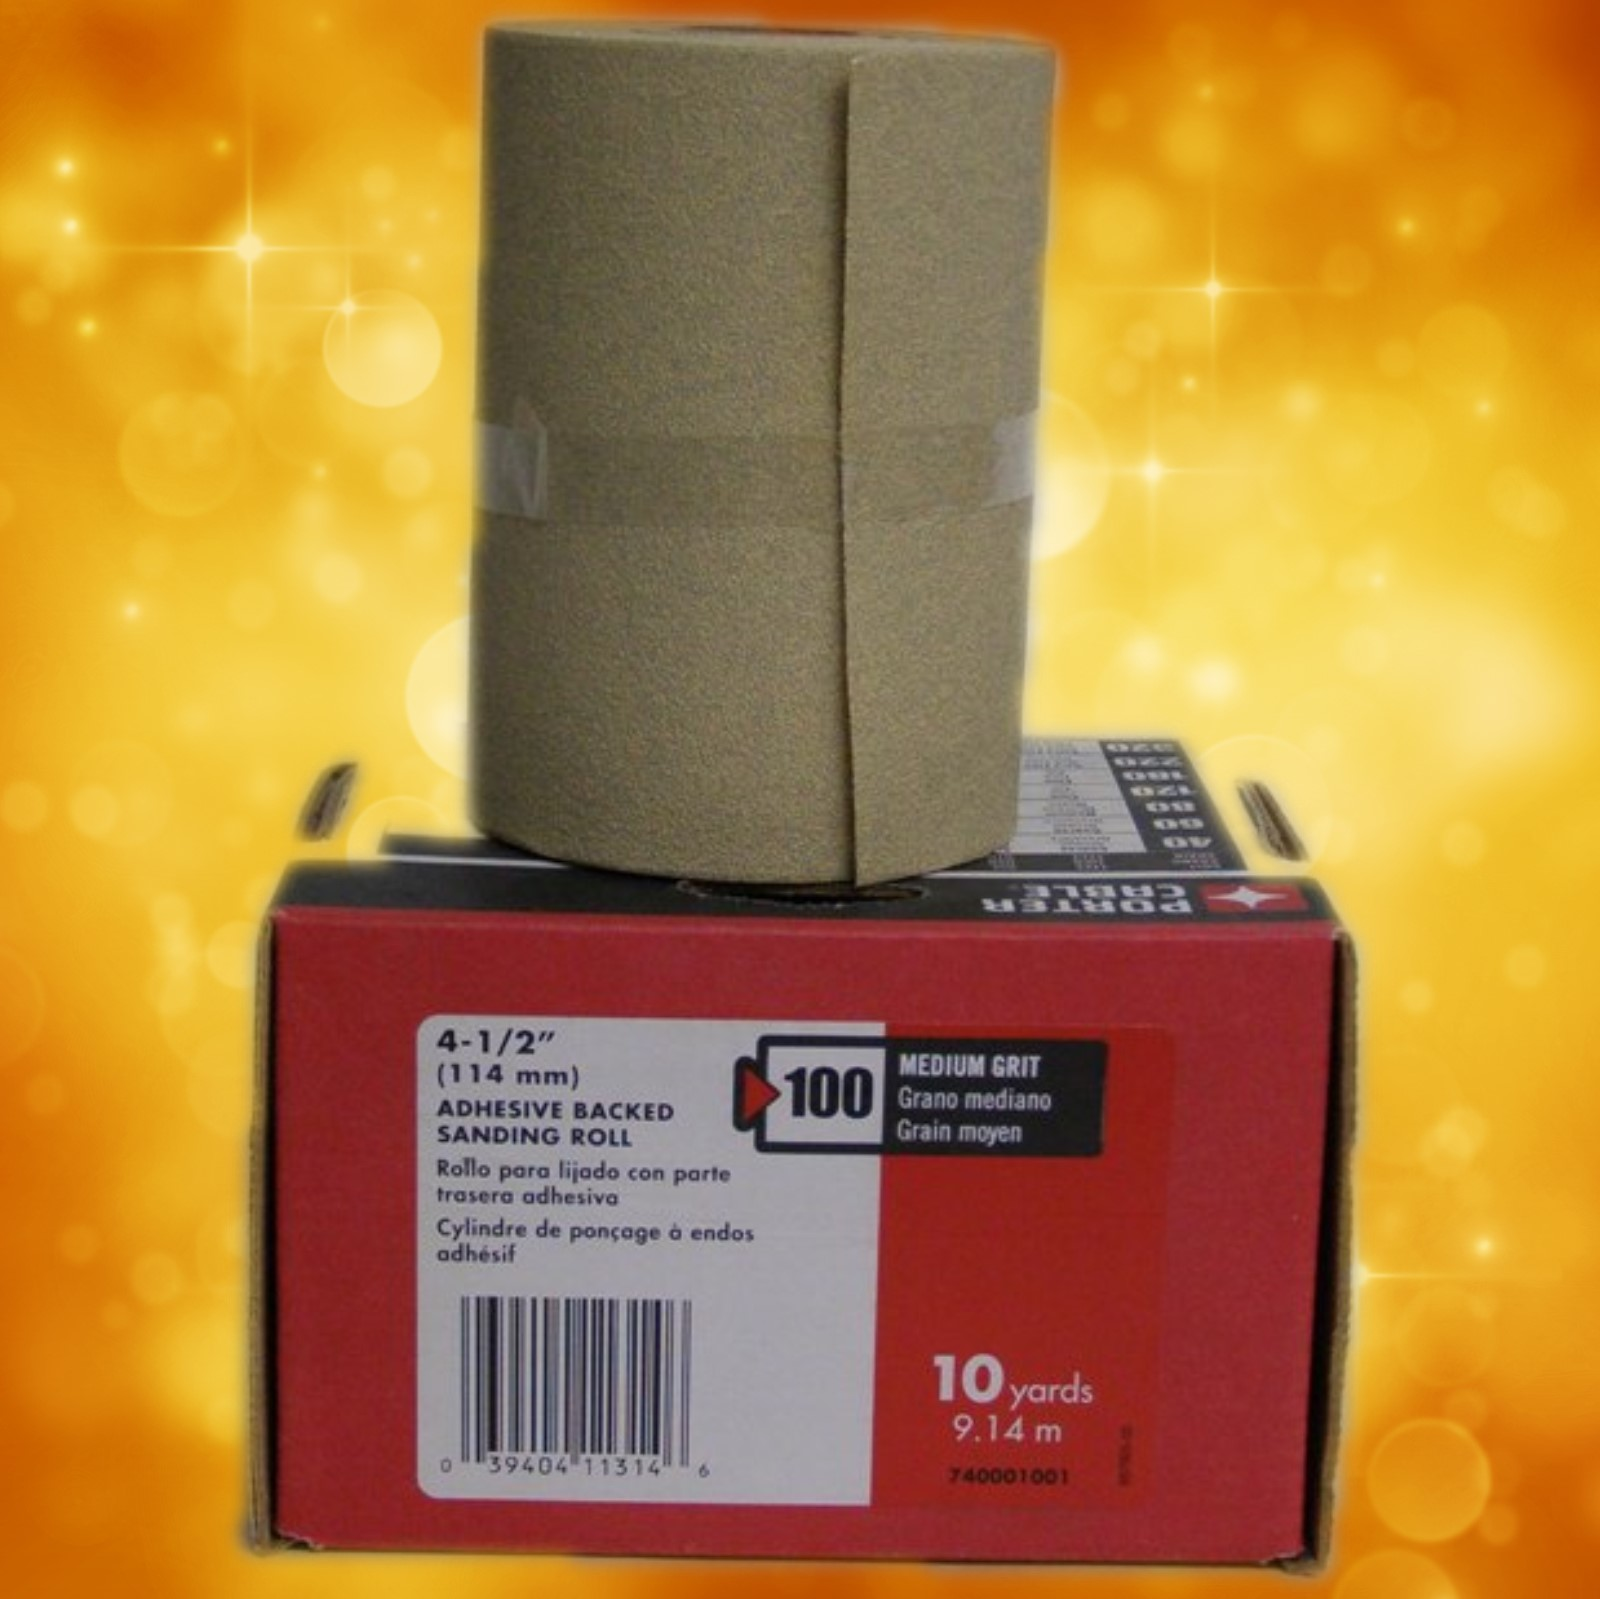 "Porter-Cable 4-1/2"" x 10 Yard, Adhesive-Backed Sanding Roll - 100 Grit 740001001"